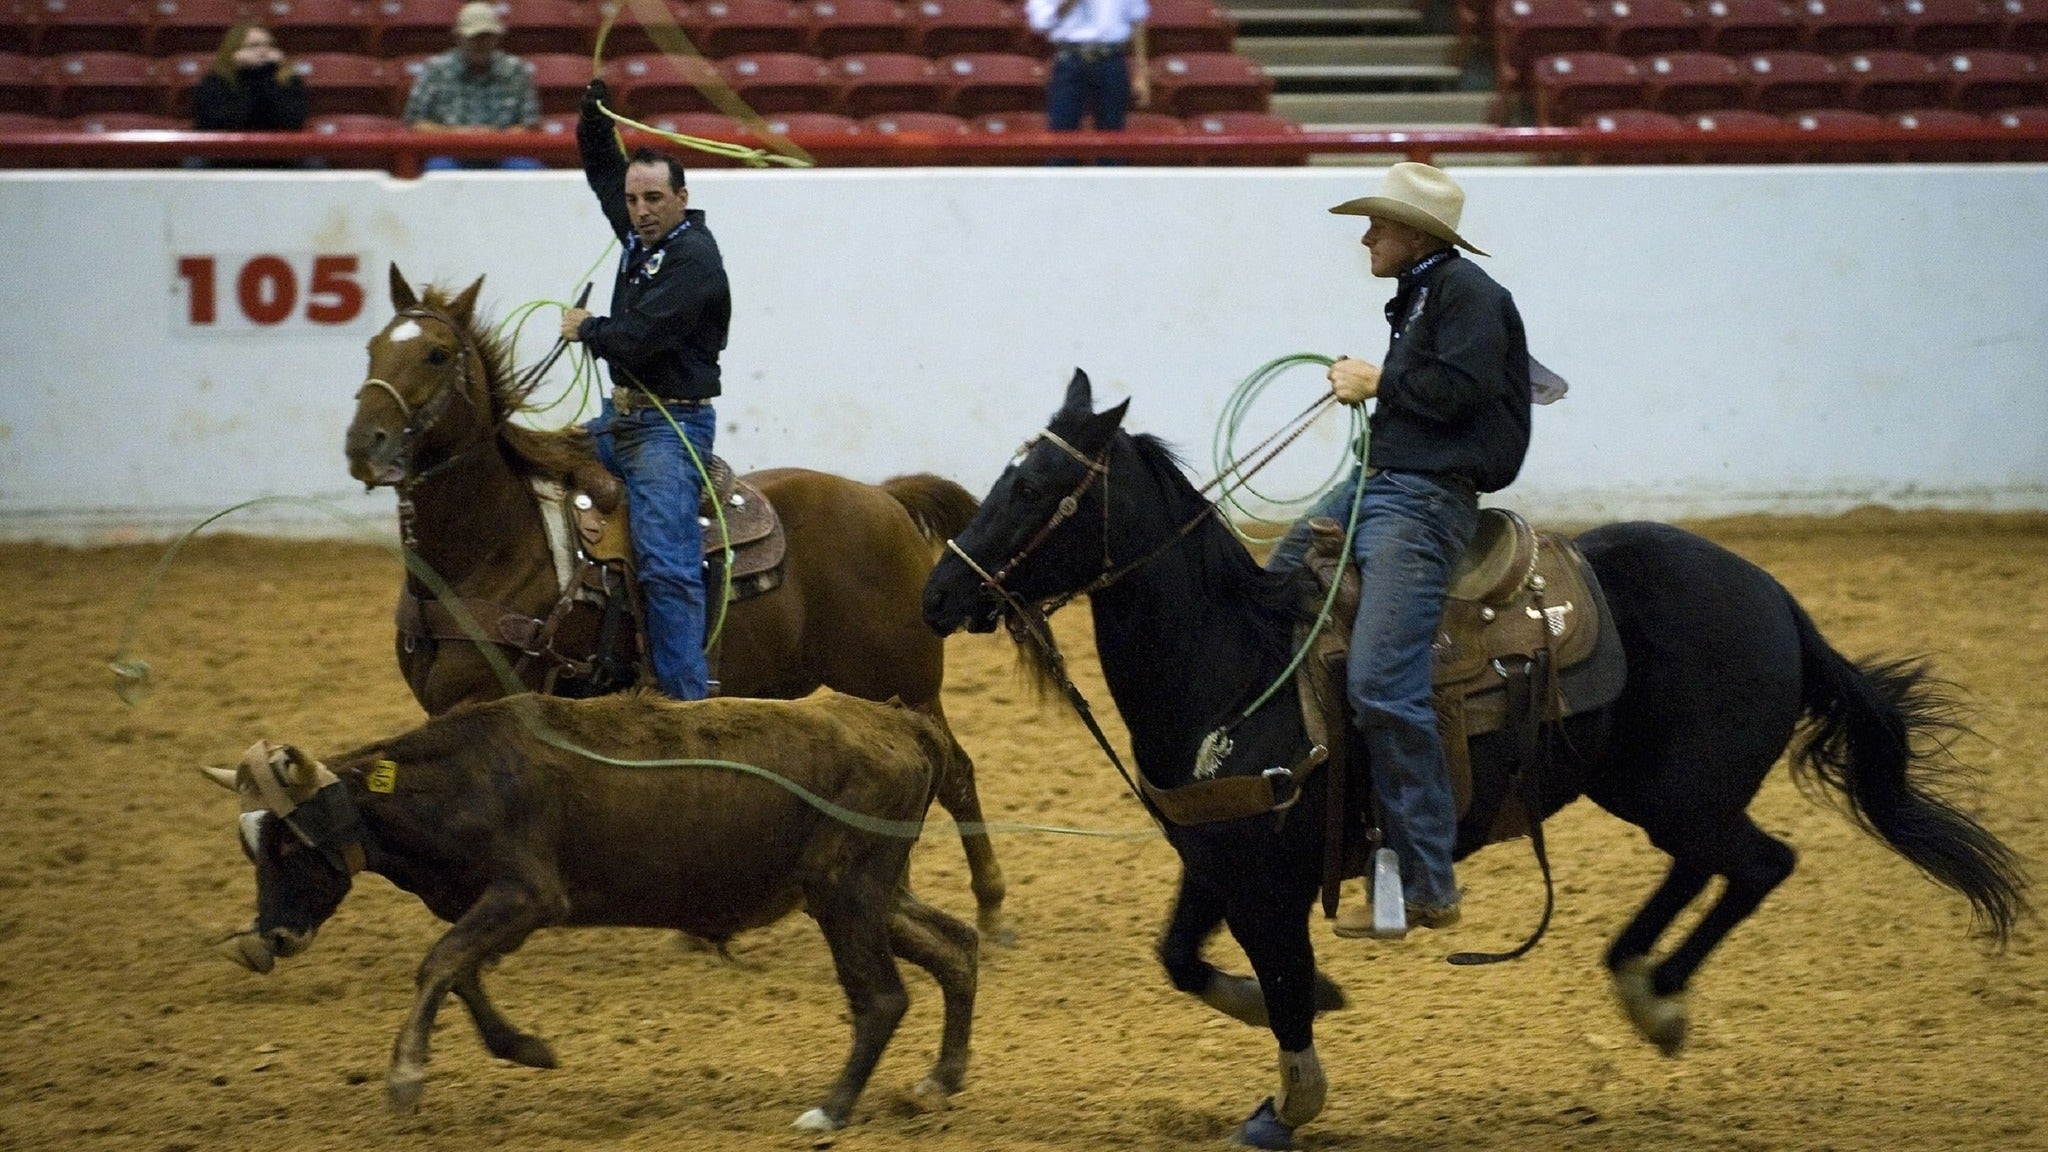 Grand Island Roundup Prca Rodeo at Heartland Events Center